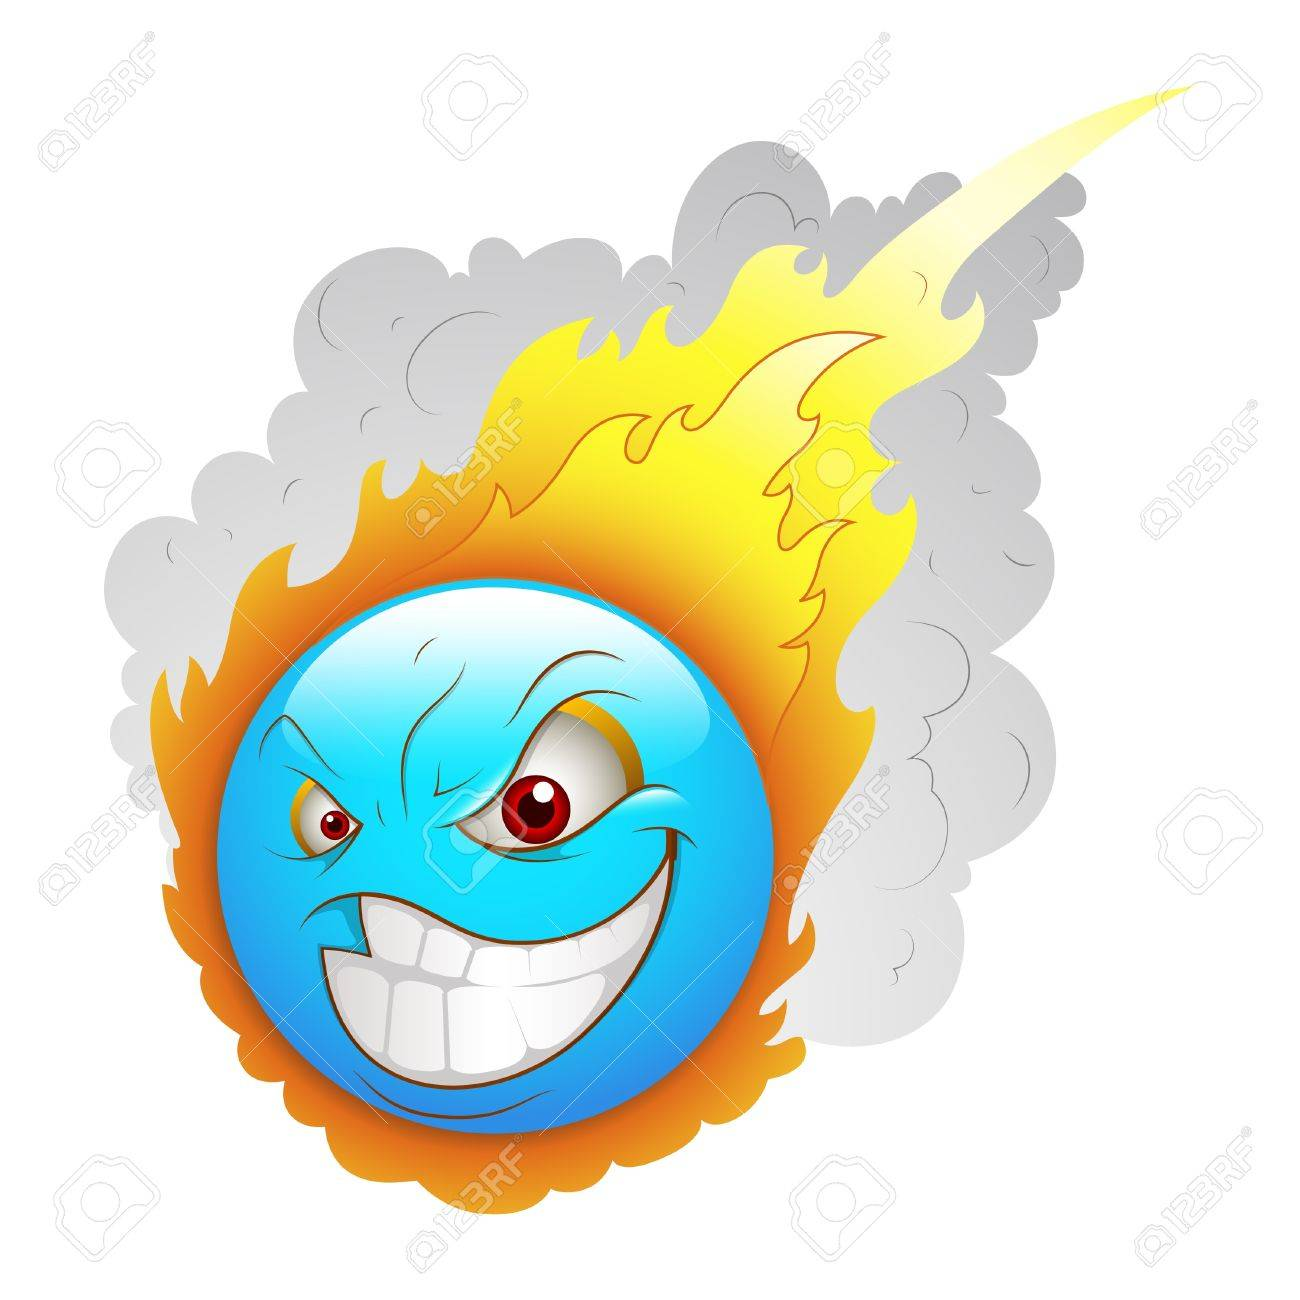 Smiley Emoticons Face Asteroid Stock Vector - 15808652